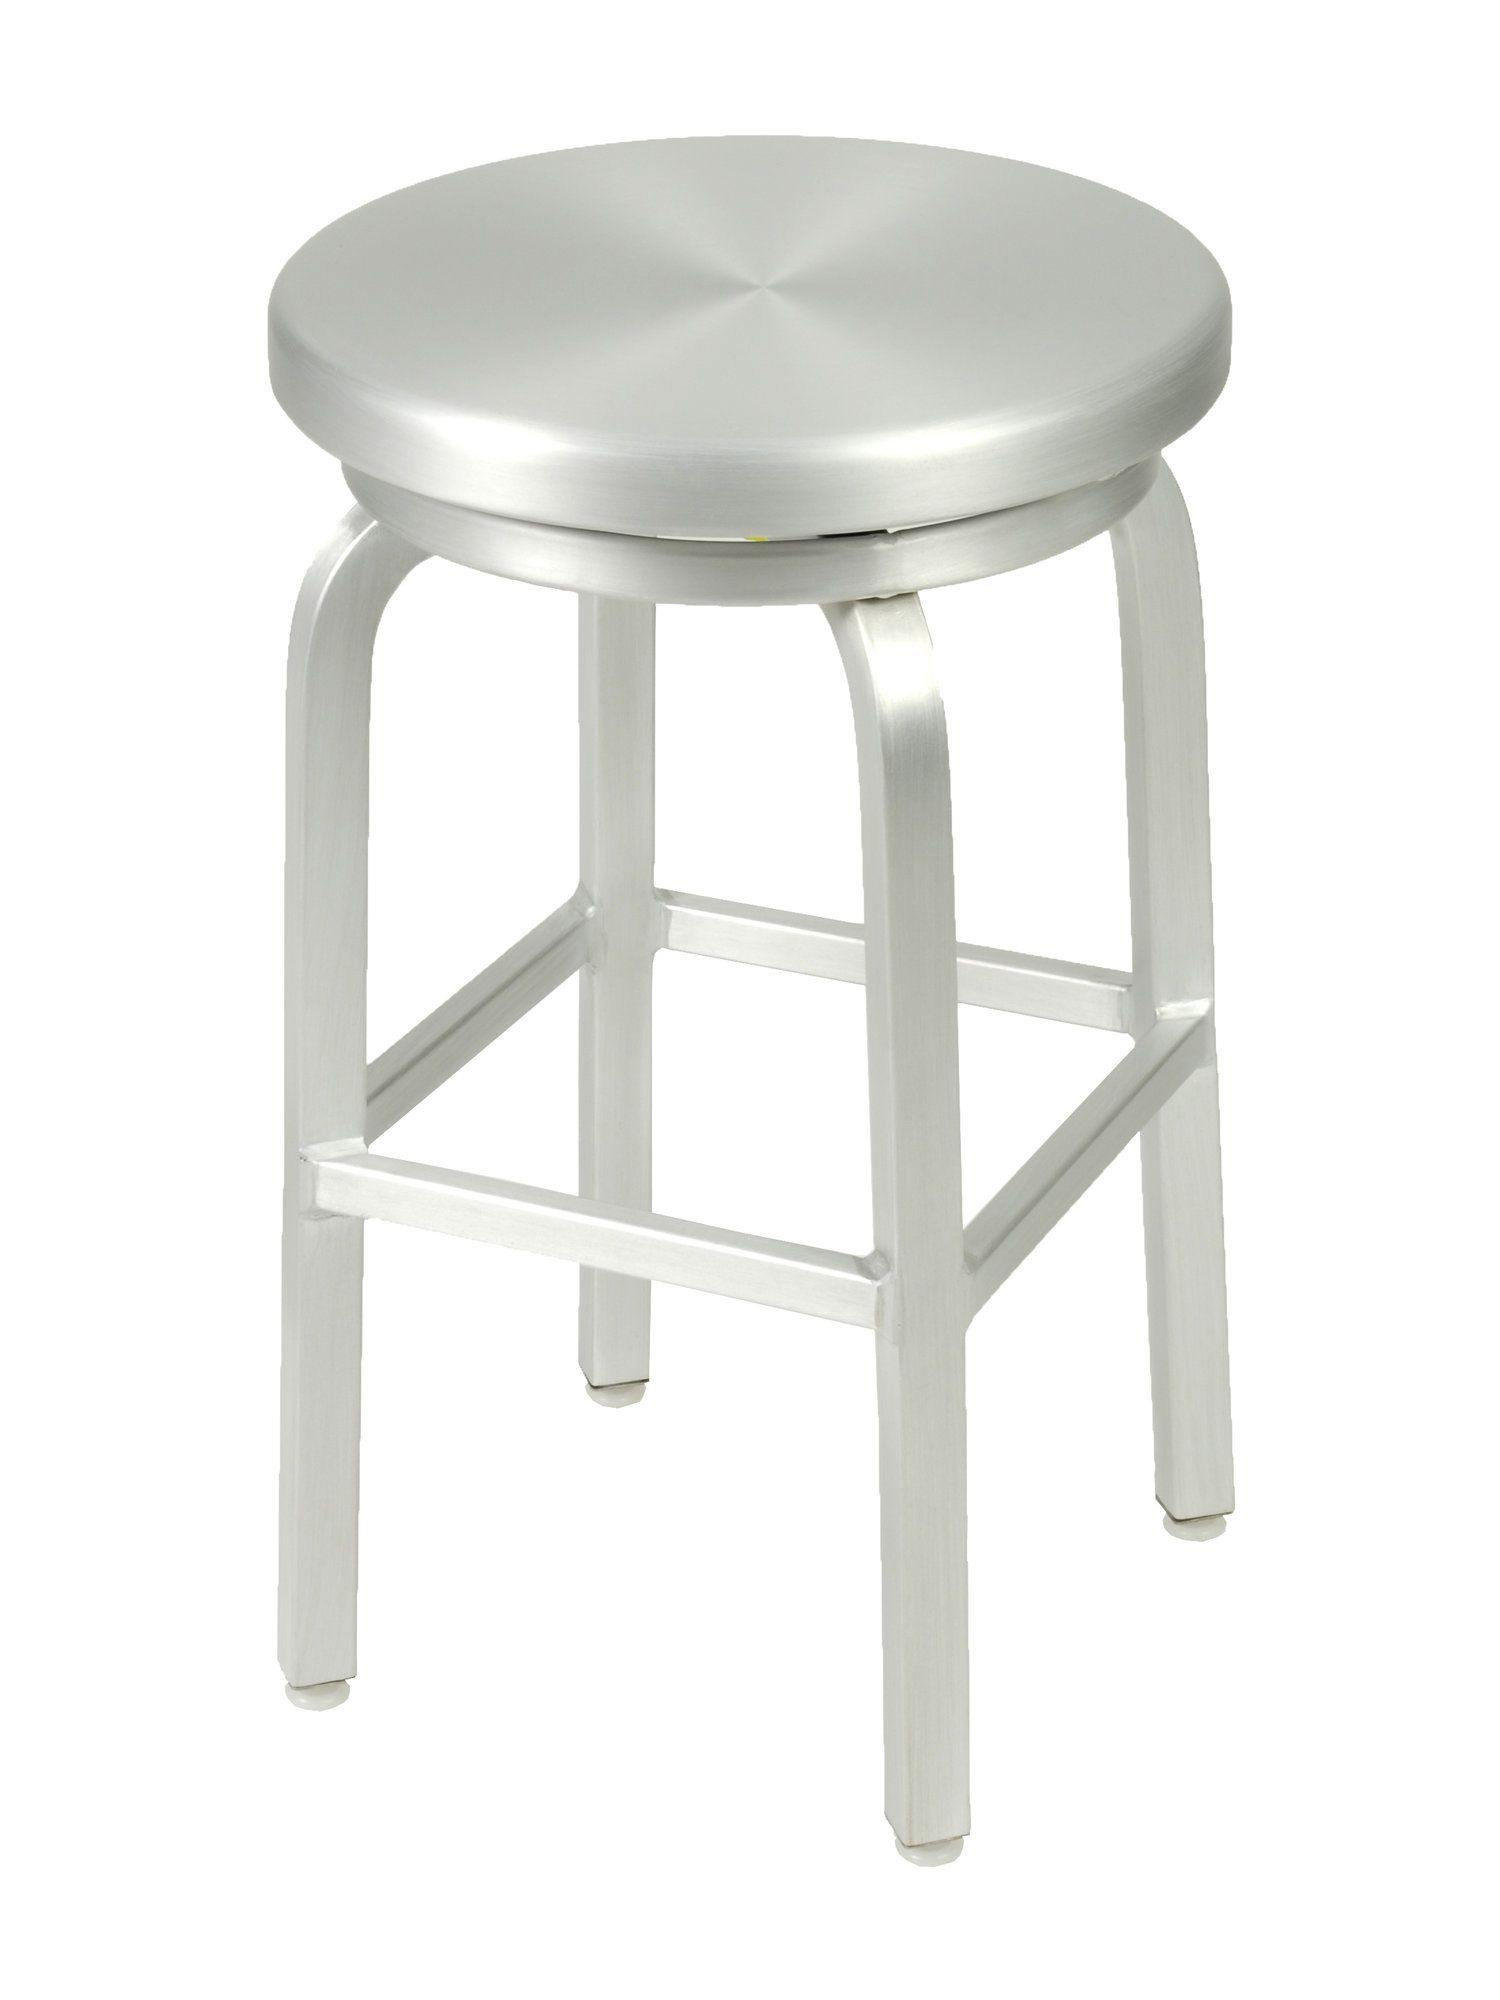 Incredible Wren 24 Patio Bar Stool Products Swivel Counter Stools Machost Co Dining Chair Design Ideas Machostcouk